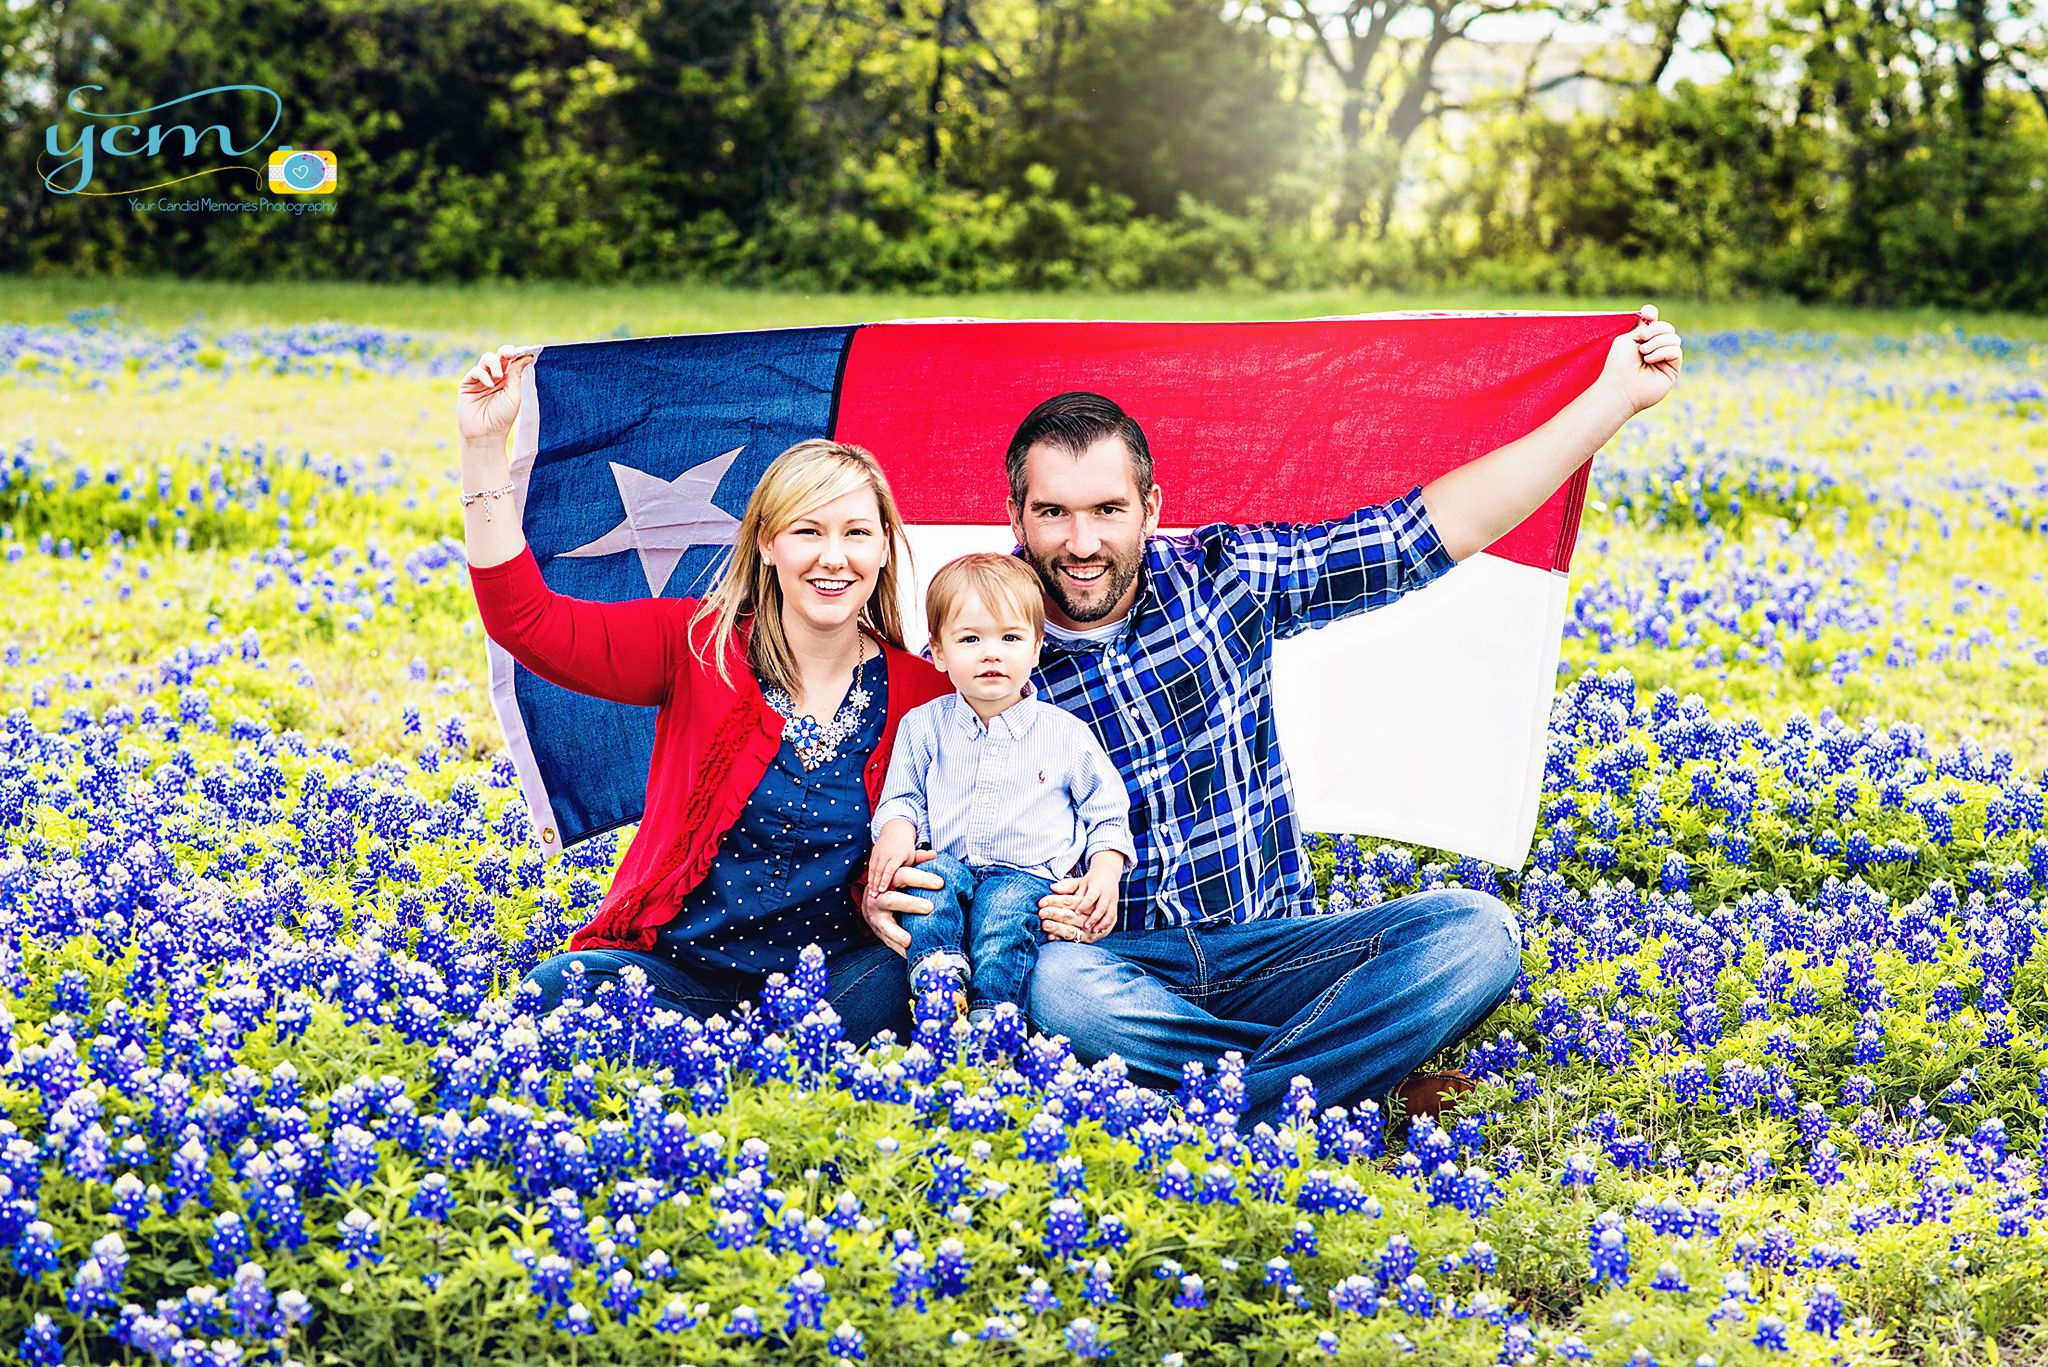 Texas Bluebonnets, Texas State Flower, Bluebonnet sessions, Family Portraits in Dallas, Your Candid Memories Photography